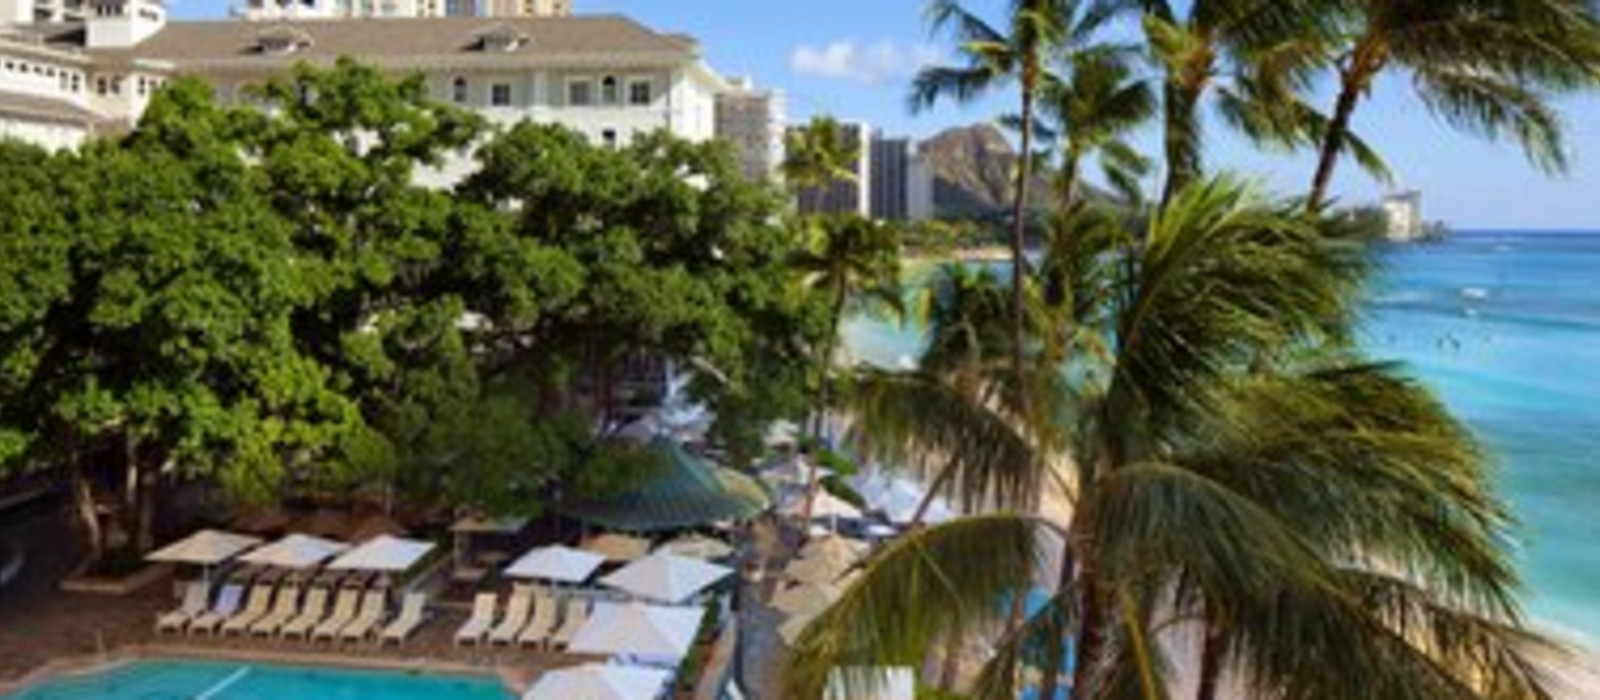 Hotel Moana Surfrider a Westin Resort & Spa (Waikiki) %region%